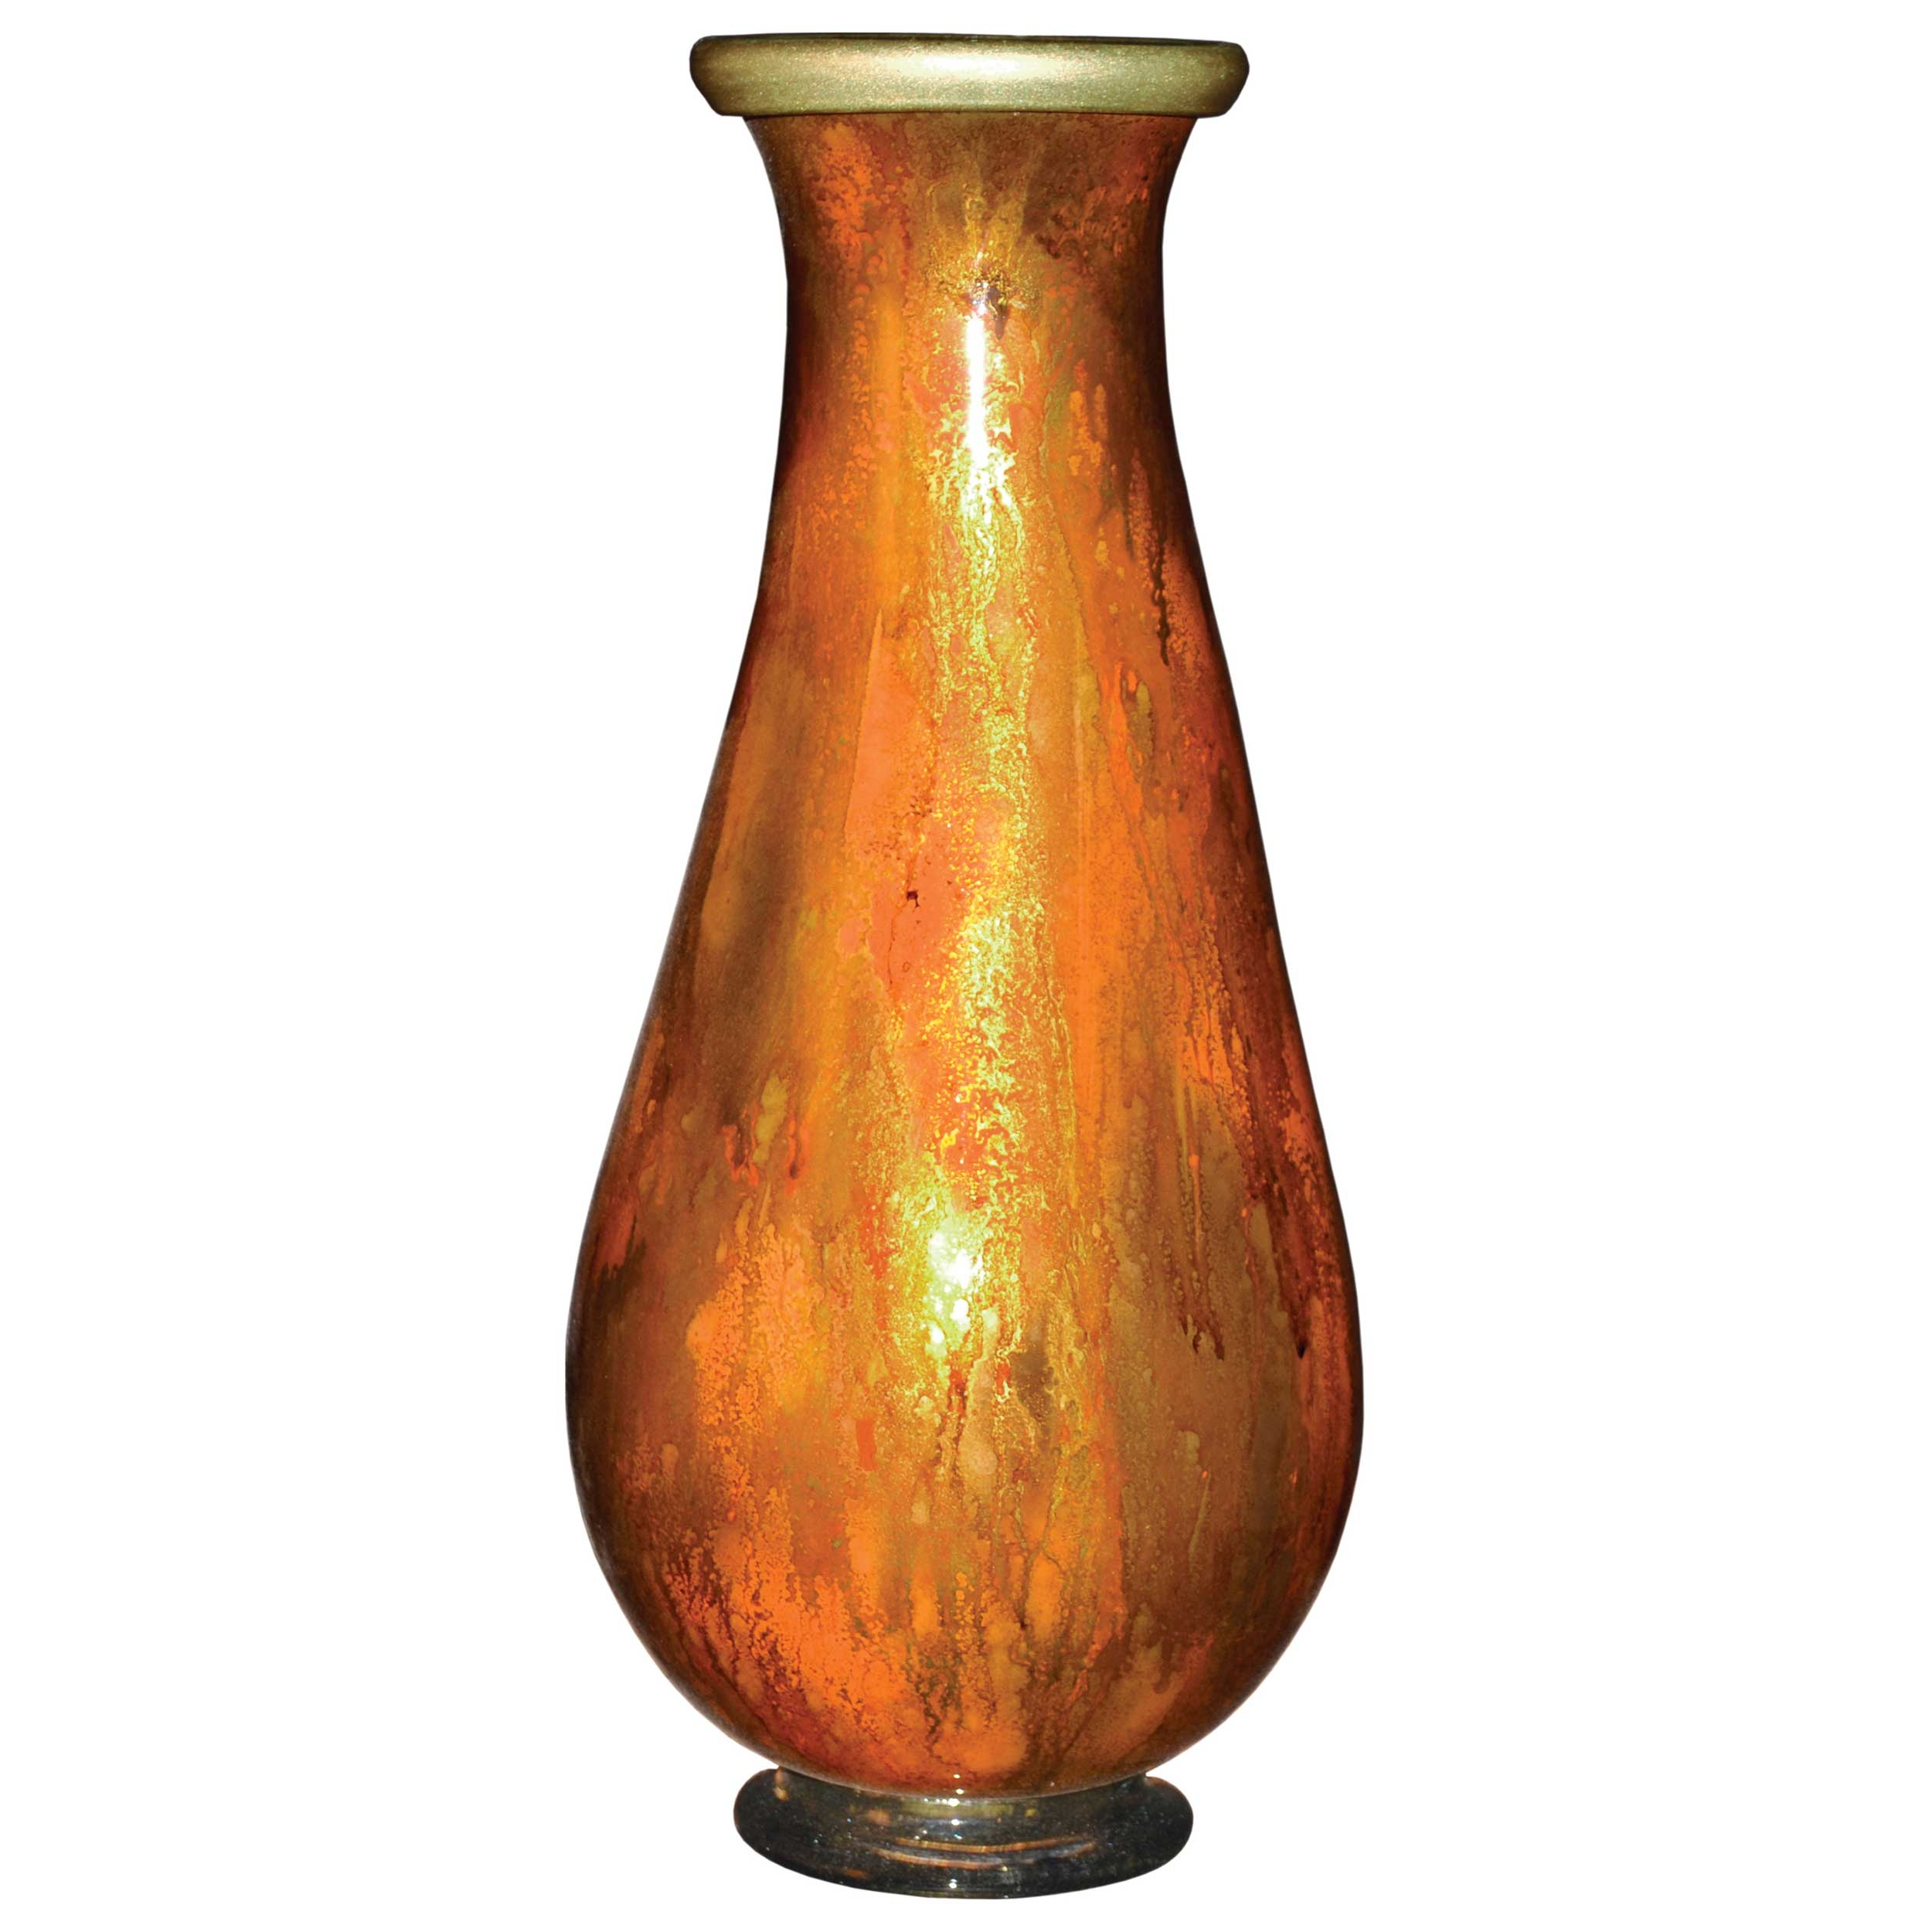 Pictured here is the feather gold glass vase from couleur